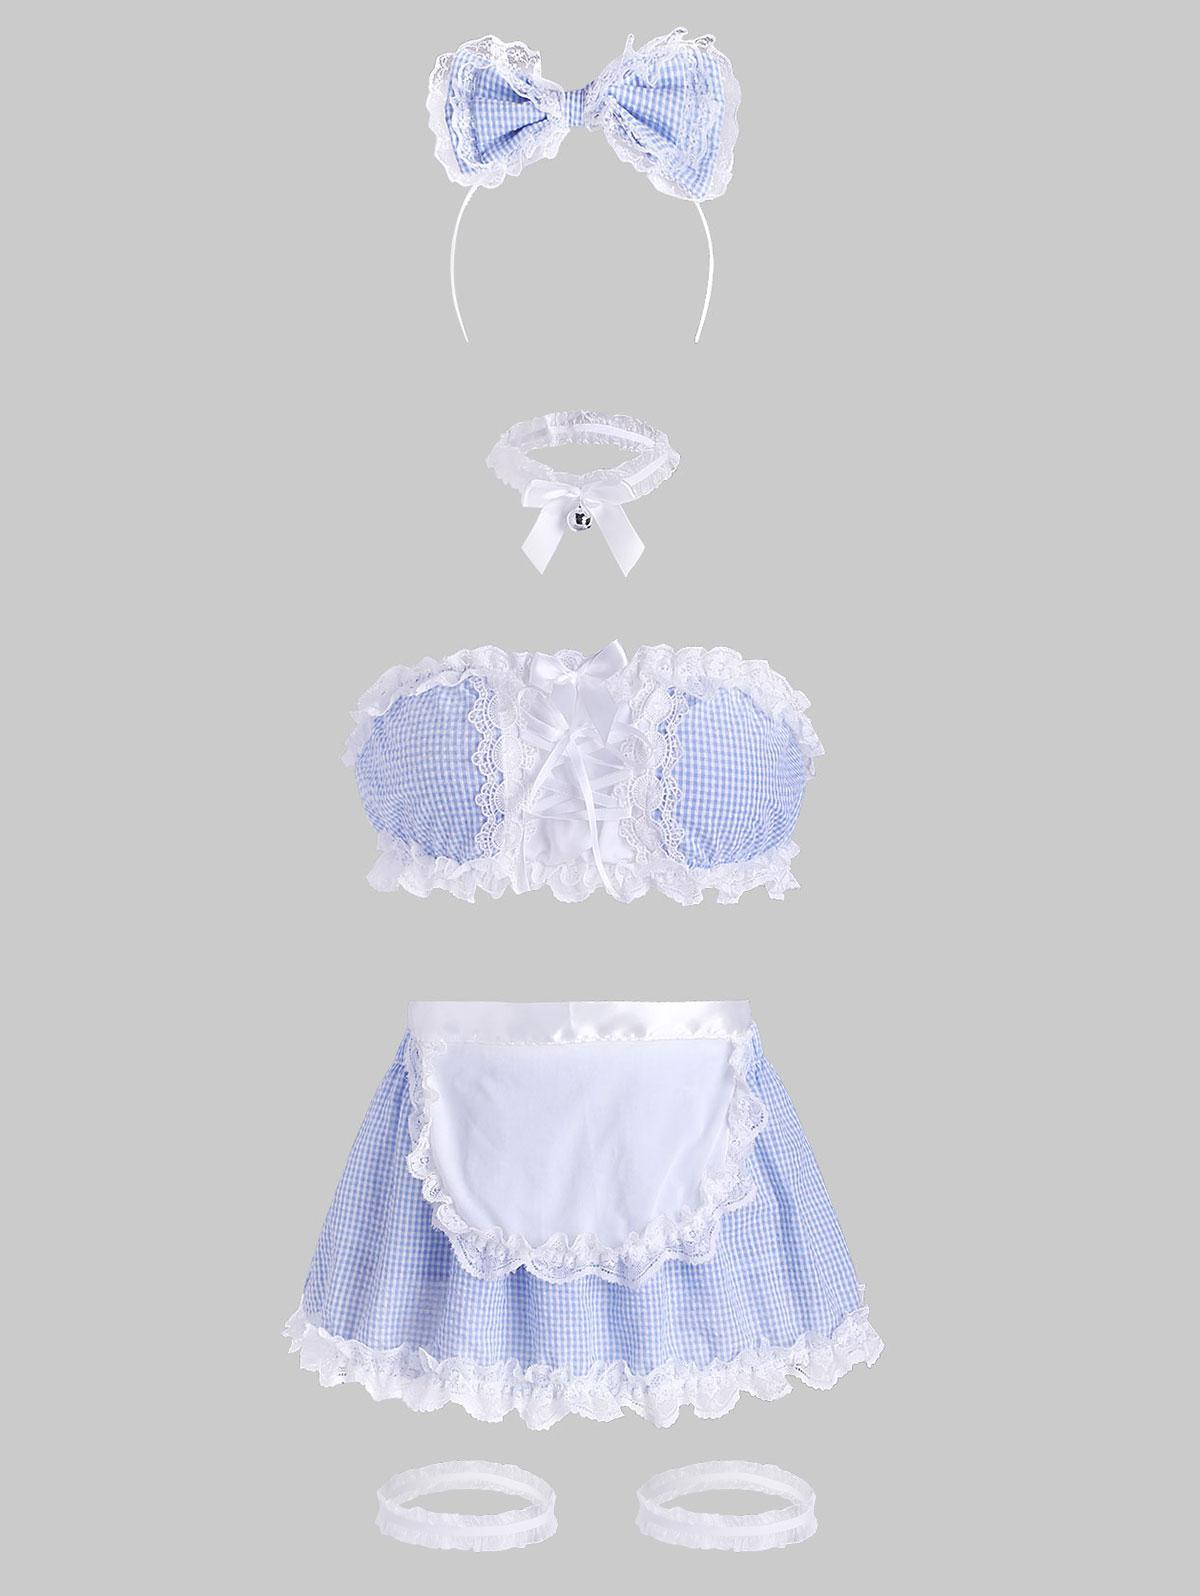 Lace Up Gingham Lace Trim Lingerie Maid Costume